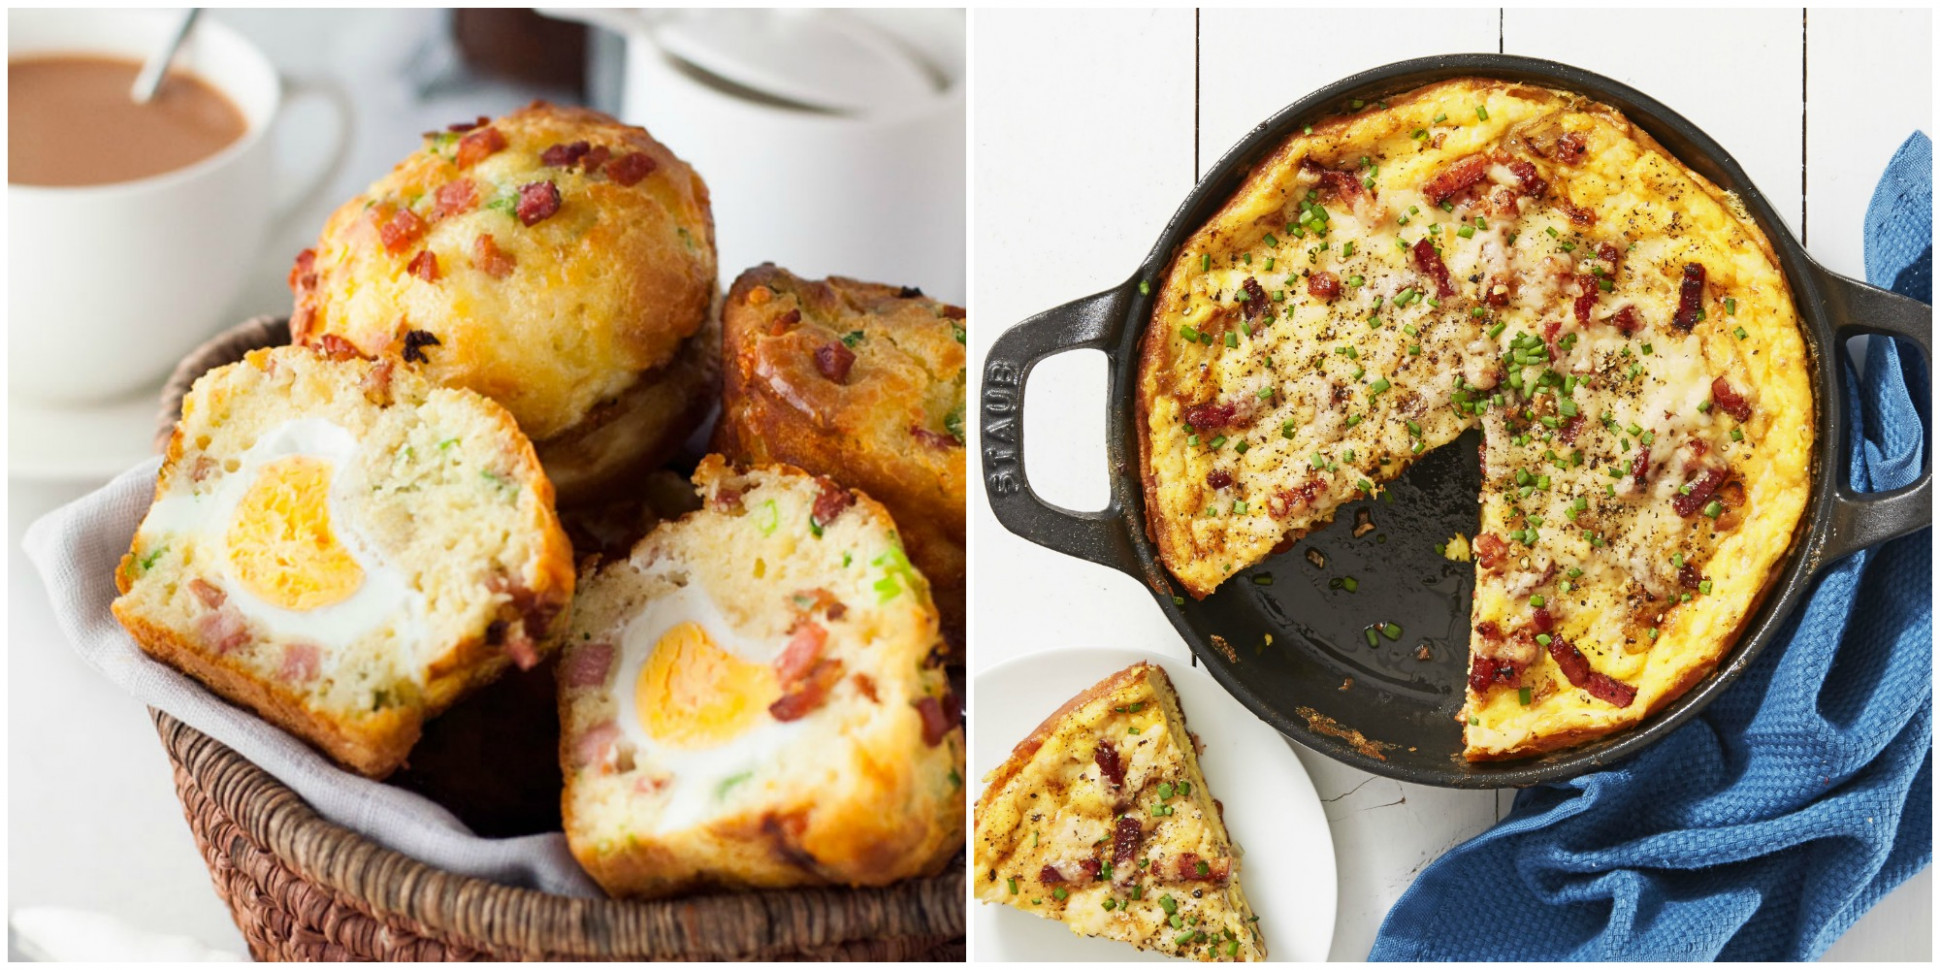 60 Easy Egg Recipes - Ways to Cook Eggs for Breakfast